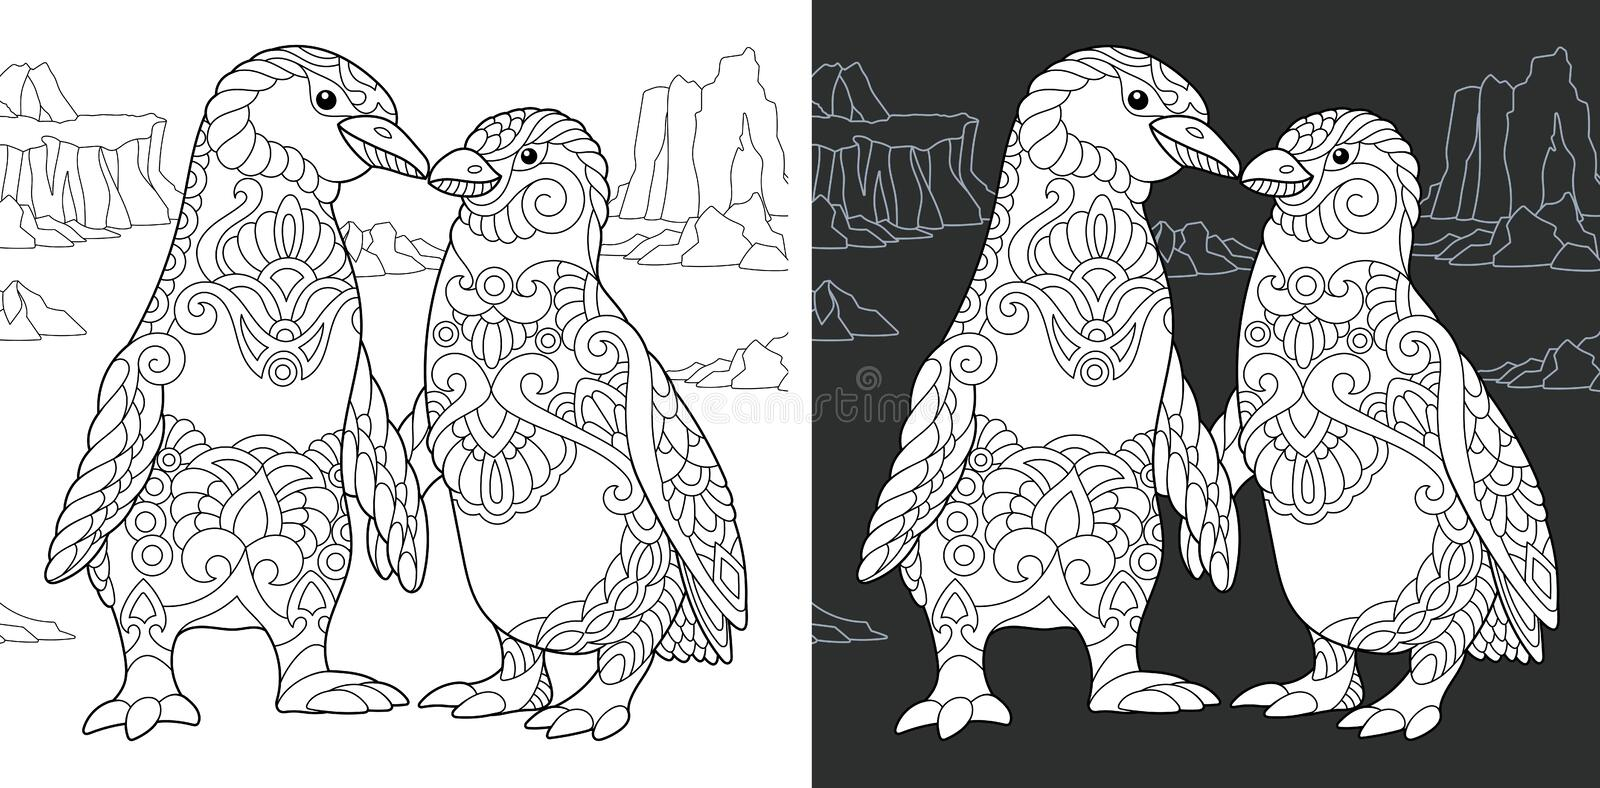 Coloring book page with penguin couple stock illustration